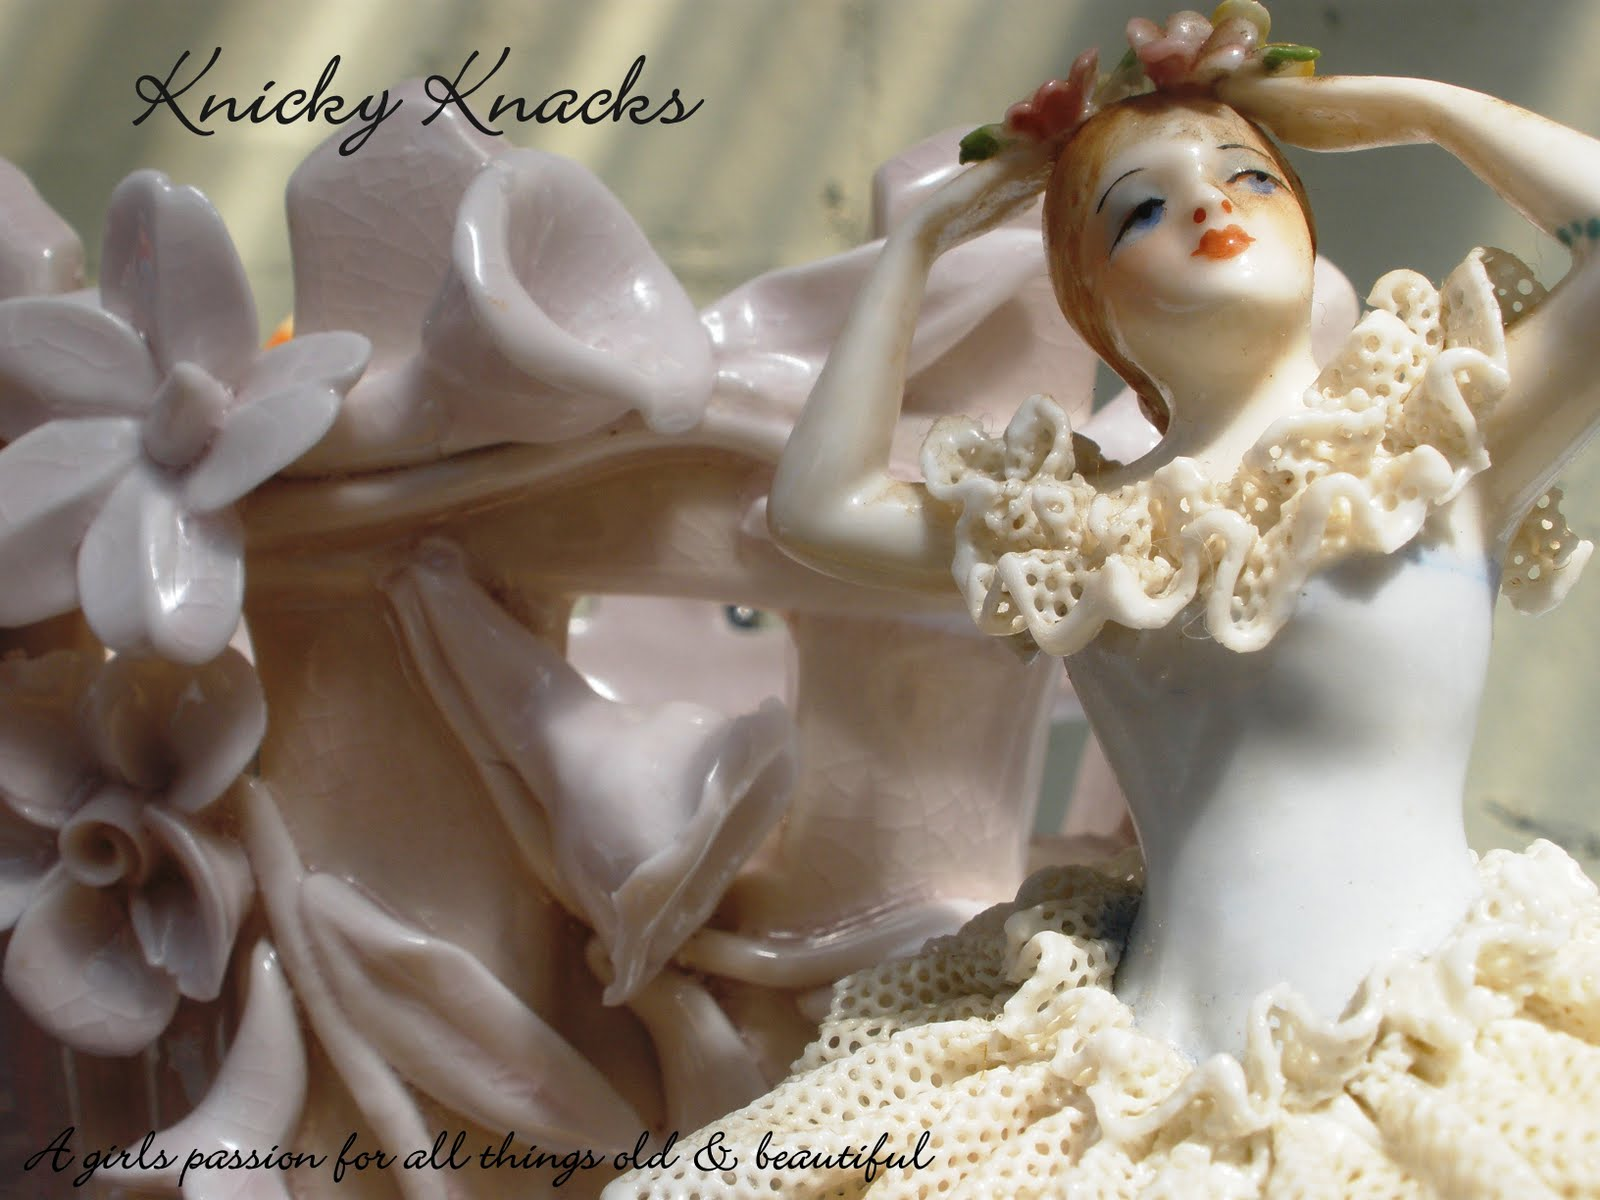 Knicky Knacks